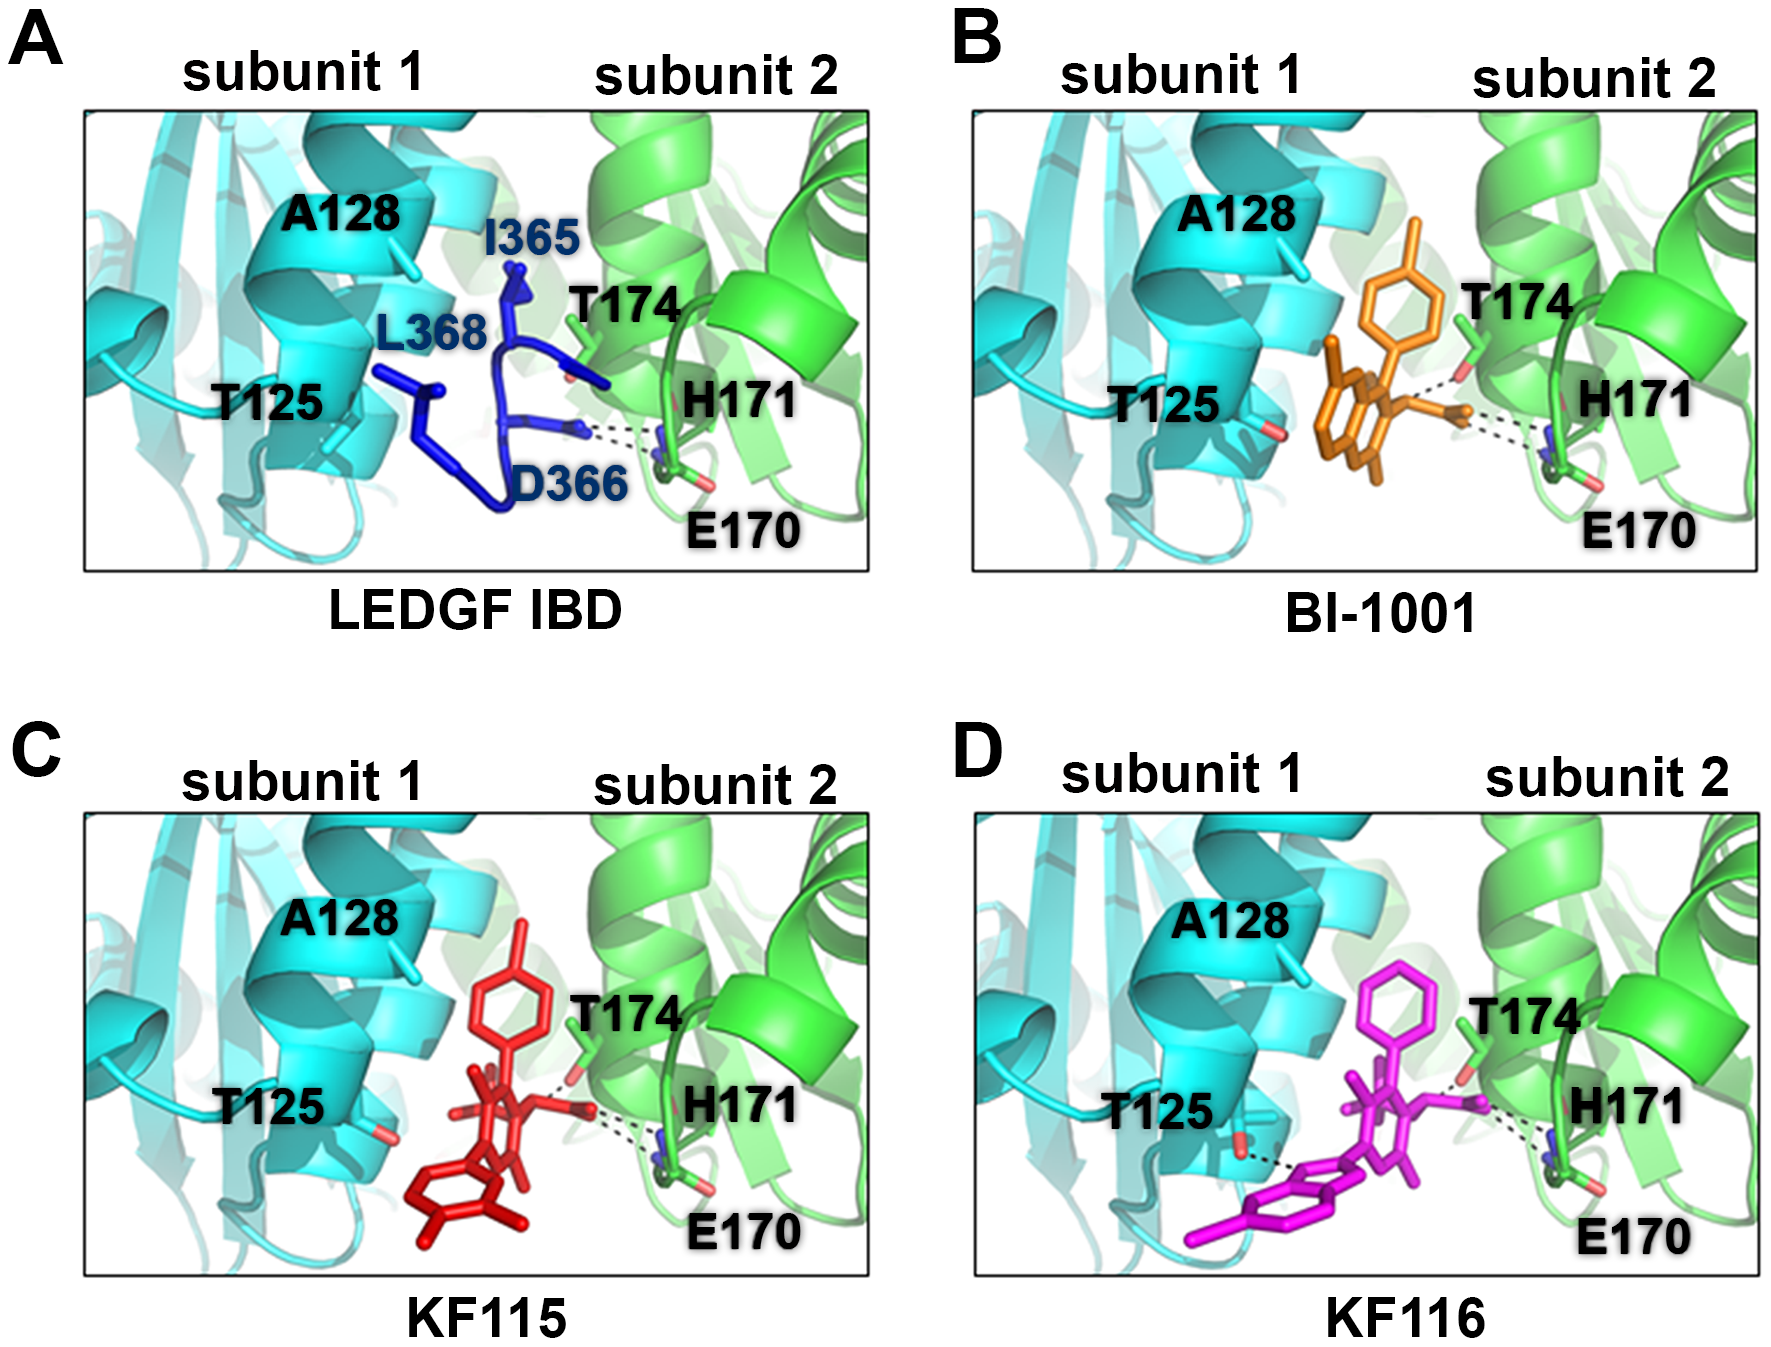 Crystal structures of LEDGF/IBD (A), BI-1001 (B), KF115 (C), and KF116 (D) bound to HIV-1 IN CCD.